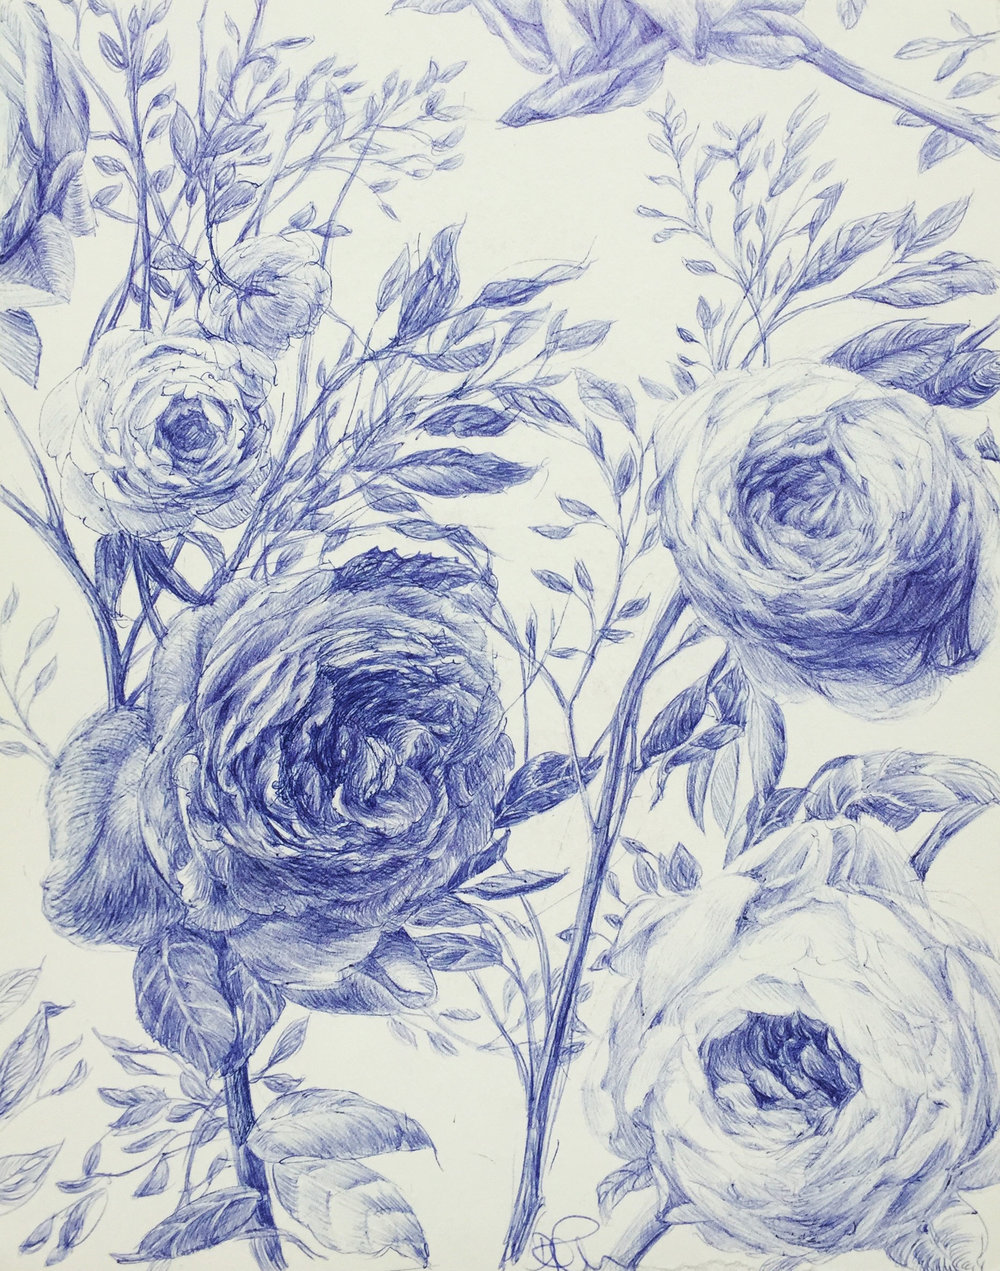 Still Life With Flowers In Blue II